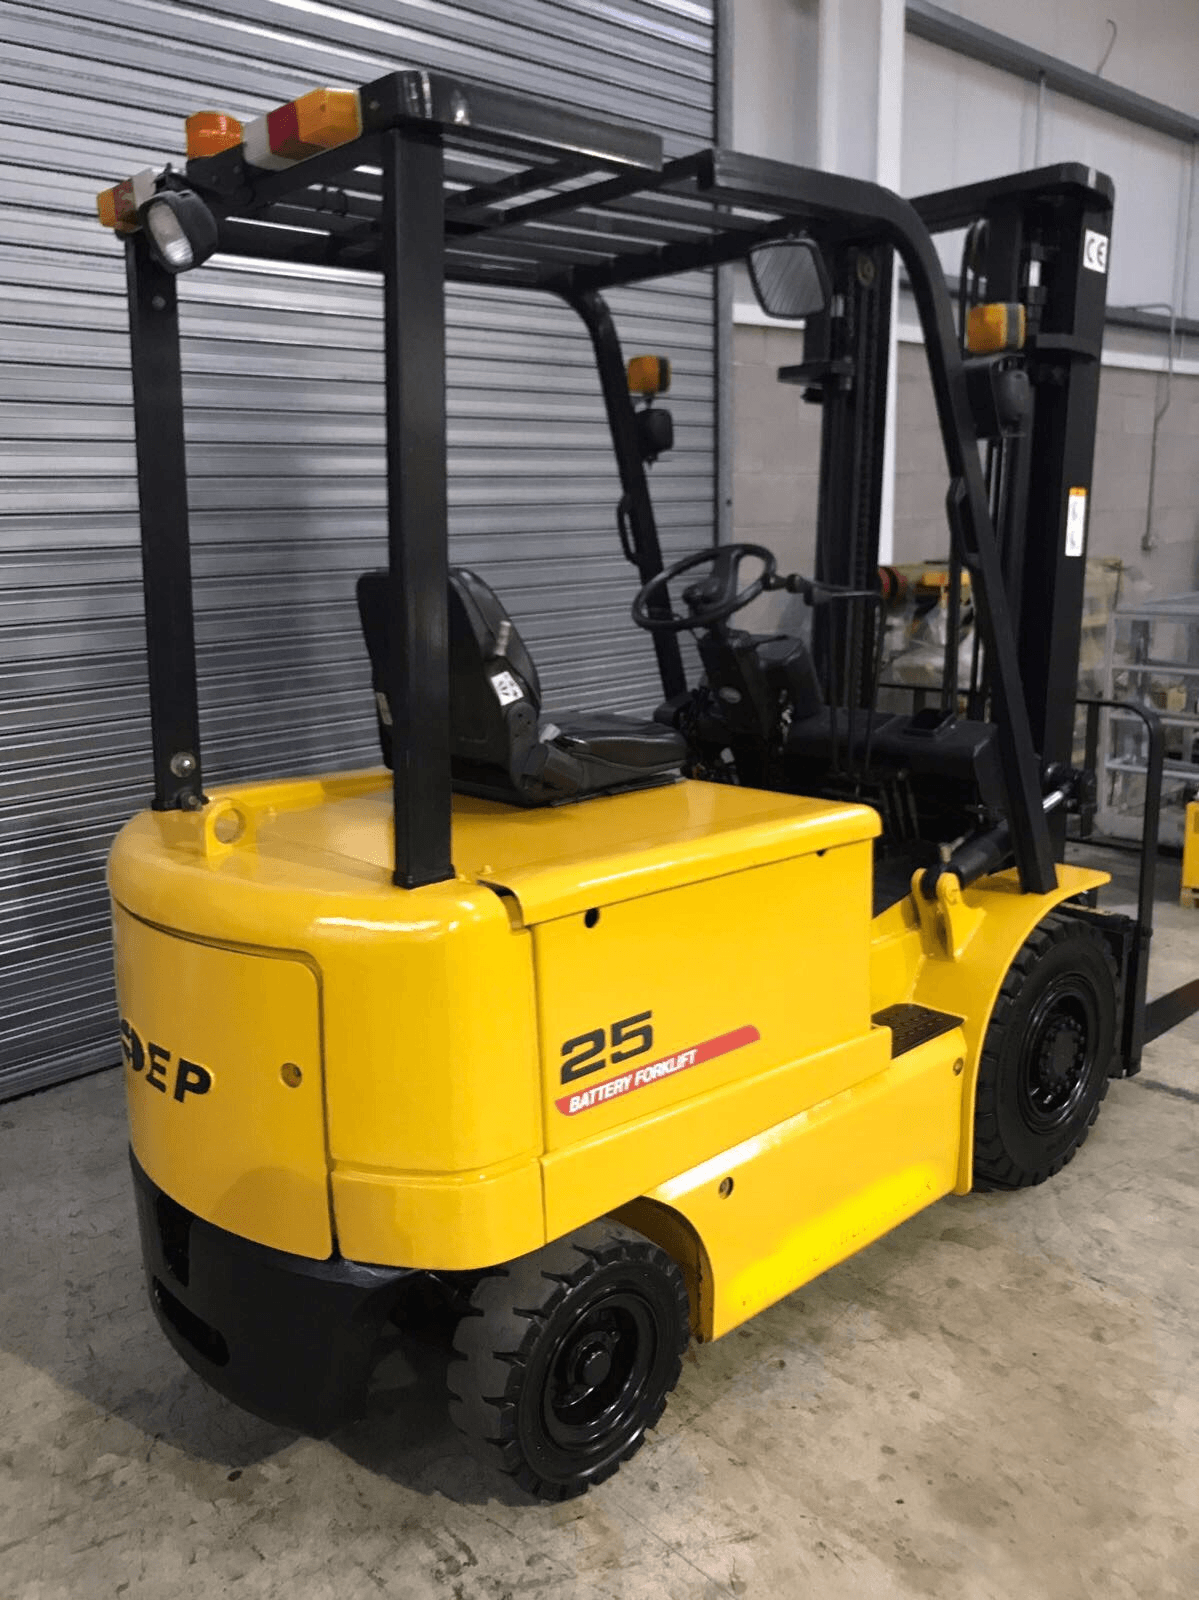 EP 2.5 Ton Electric Forklift